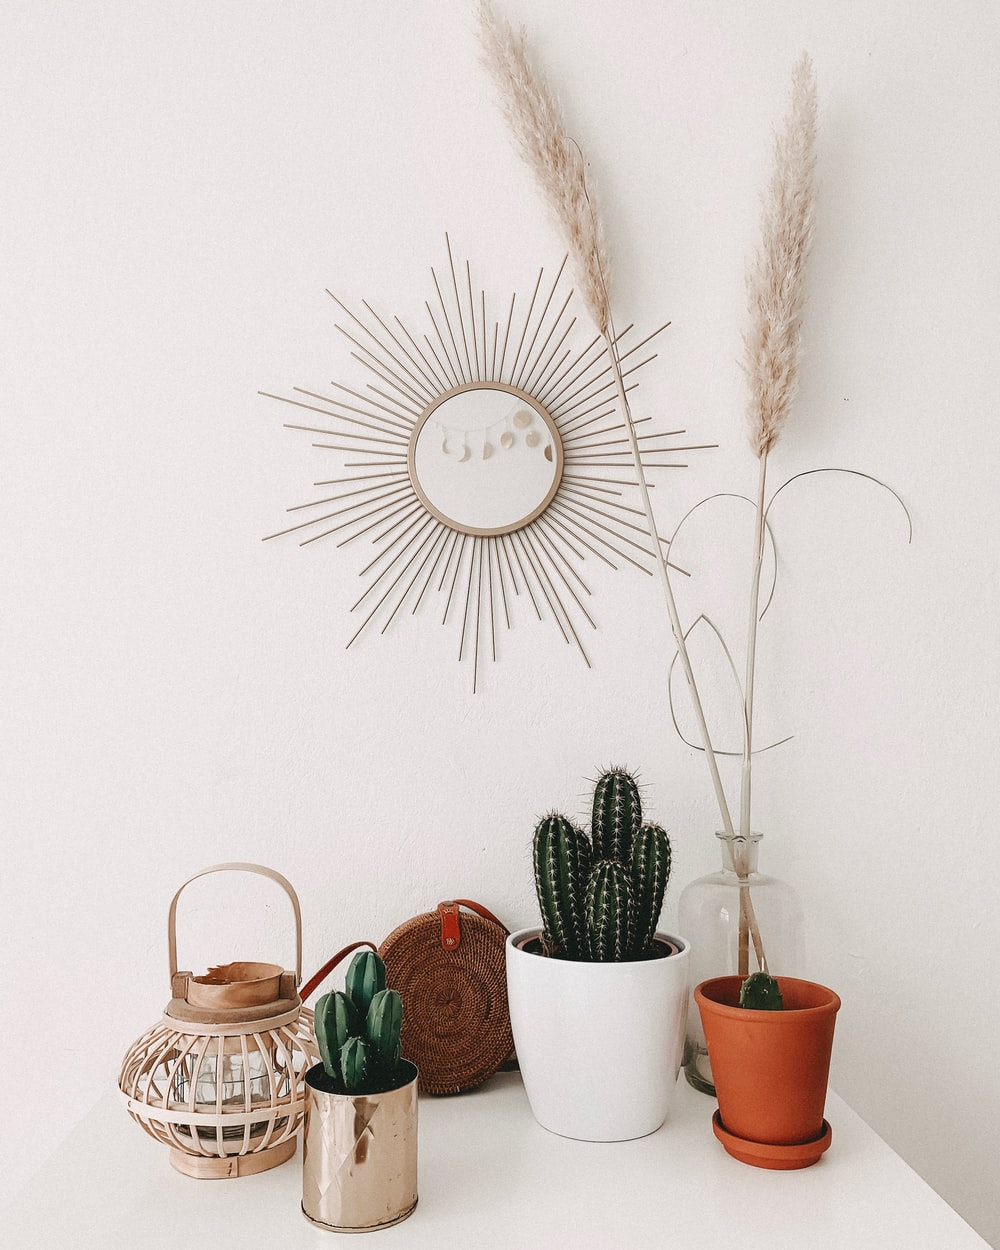 green cacti in pots on white surface